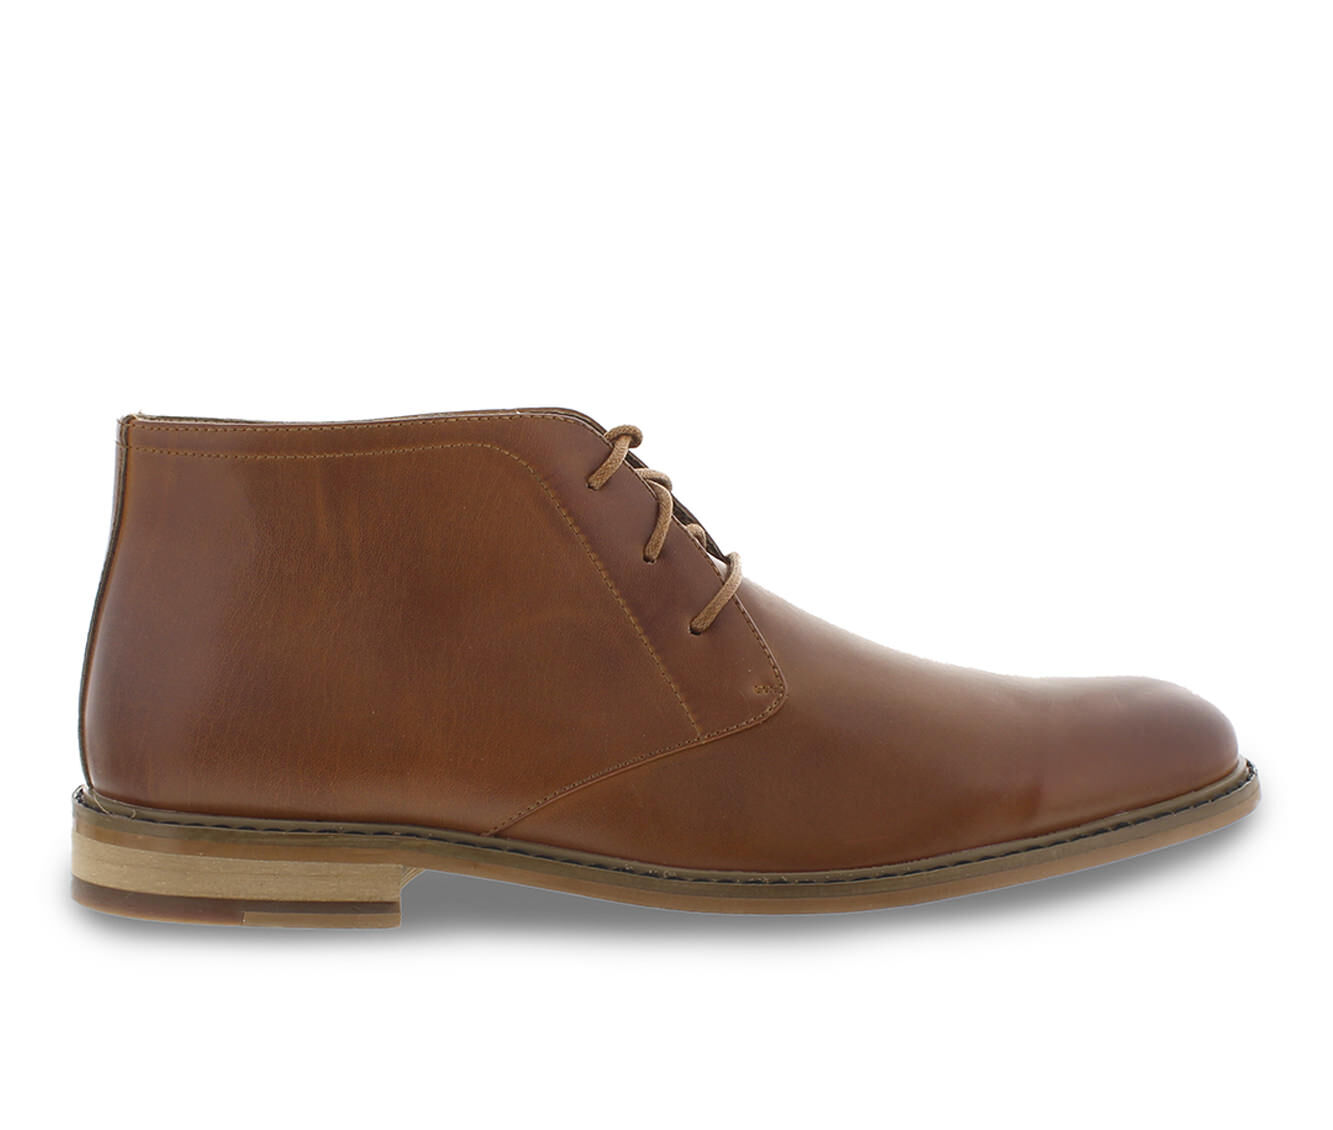 Men's Deer Stags Seattle Chukka Boots Luggage